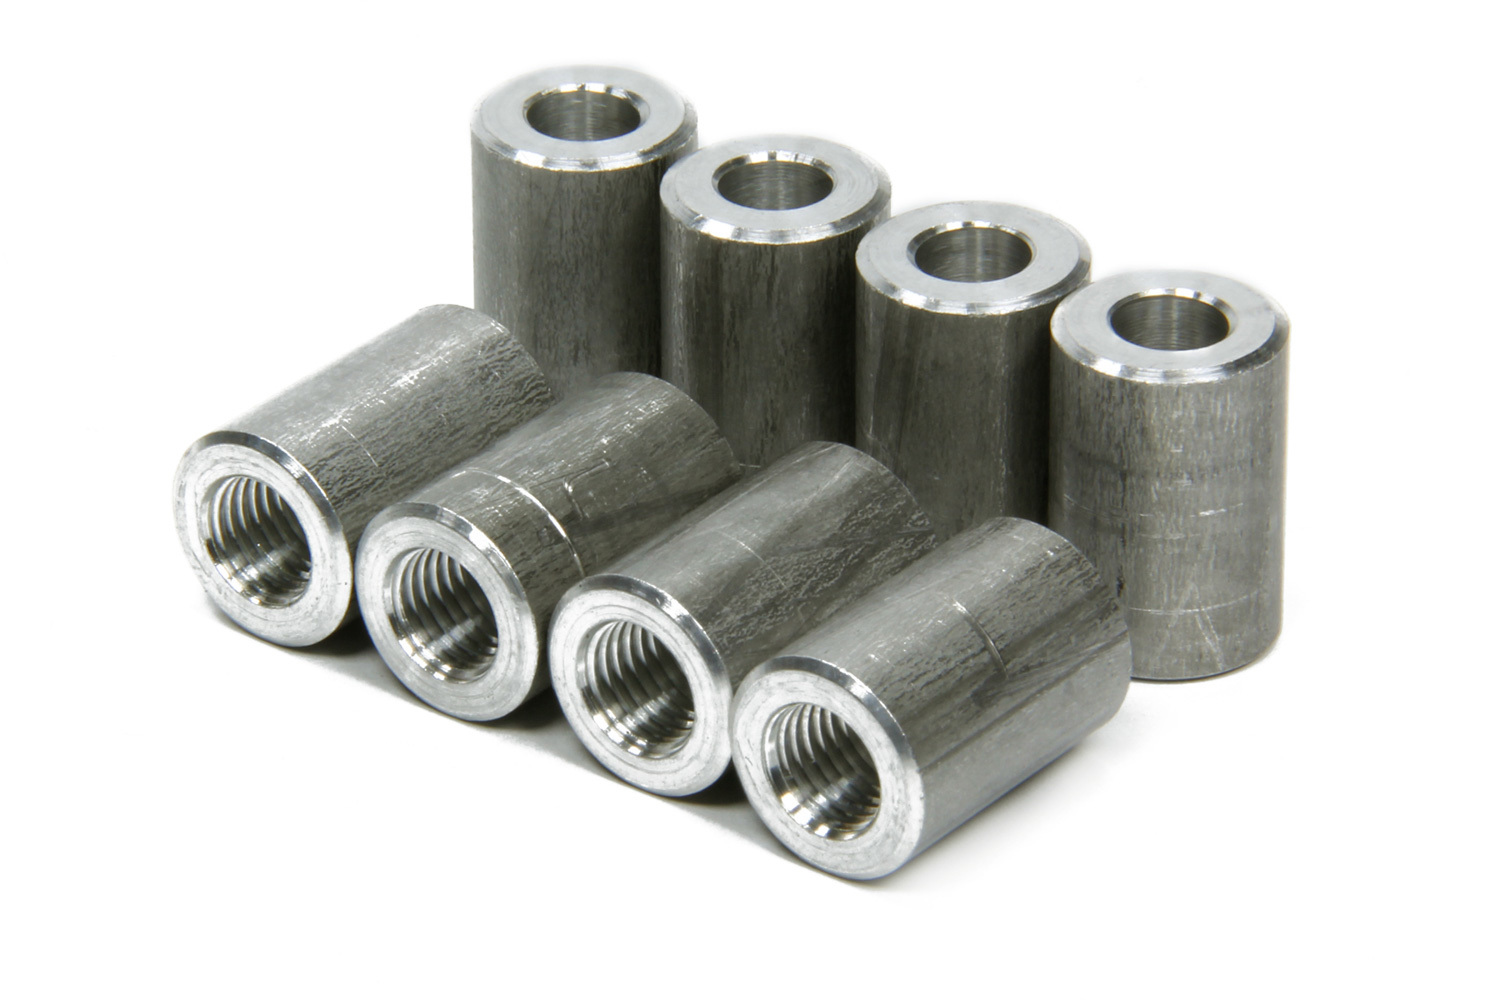 Nitrous Oxide Systems 17284 Bung, 1/16 in NPT Female, Weld-On, Aluminum, Natural, Nitrous Nozzle Fittings, Set of 8